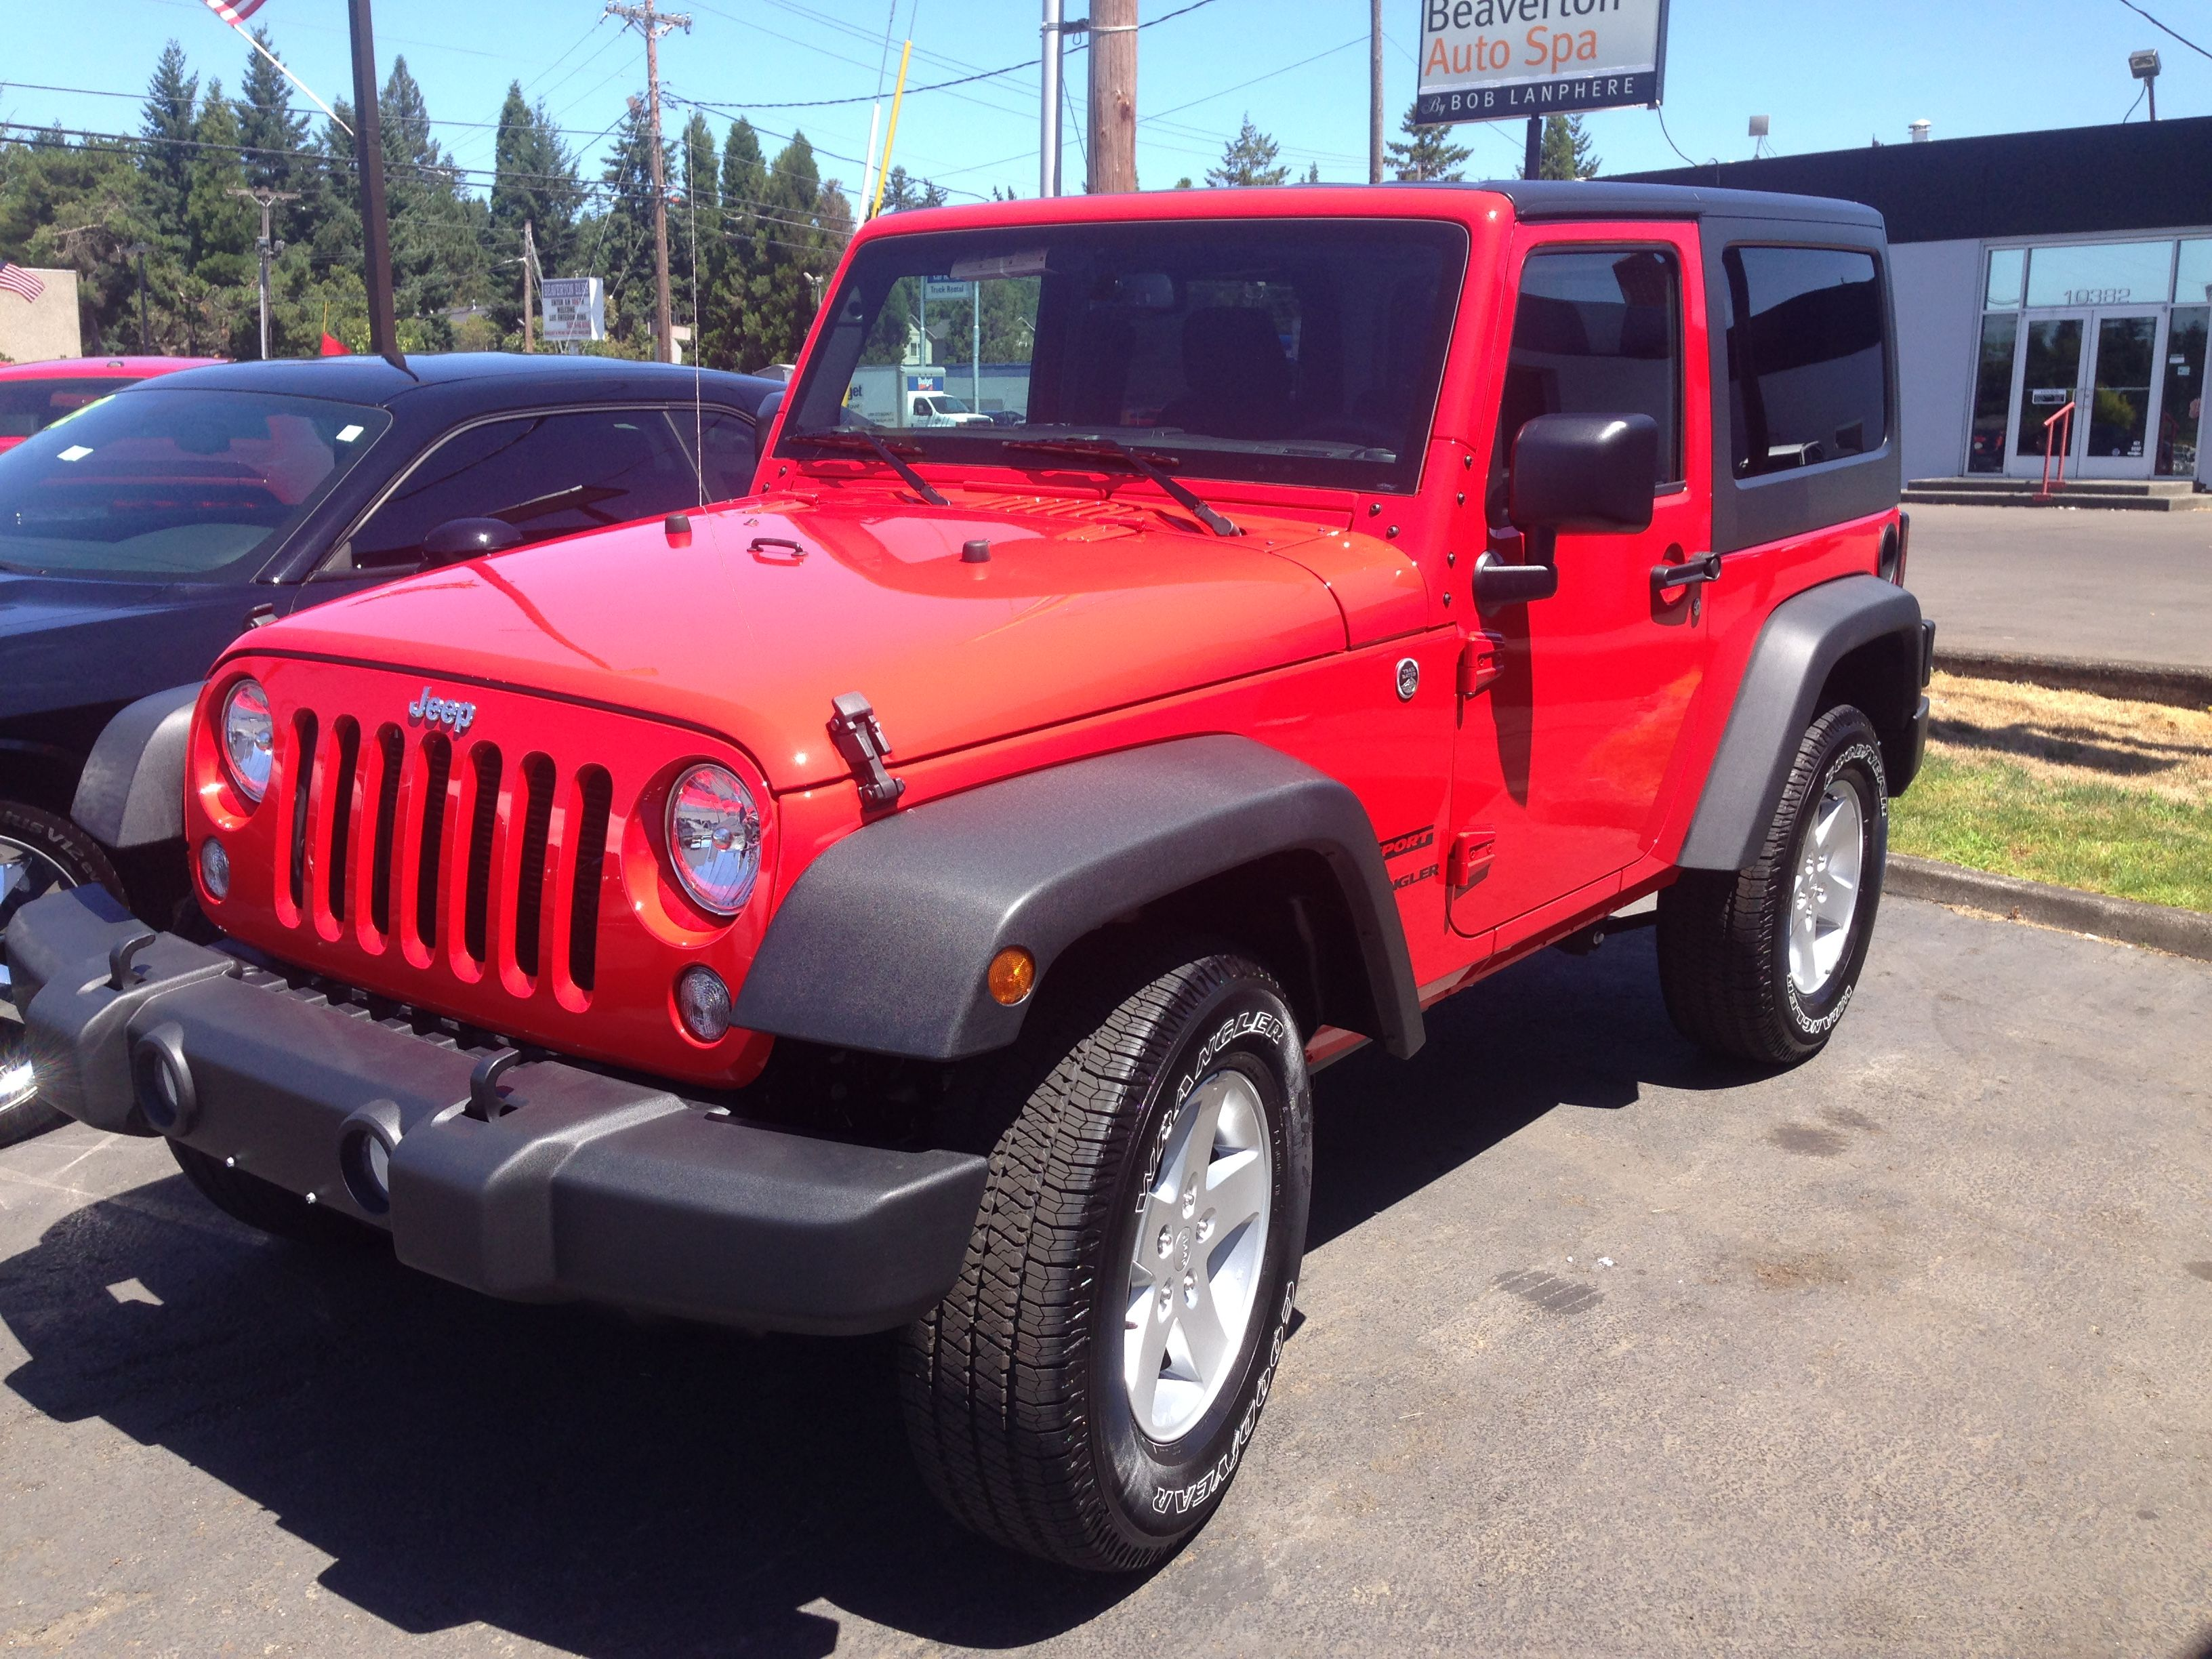 2015 Red Jeep Wrangler Sport... Yep. Right there. This is